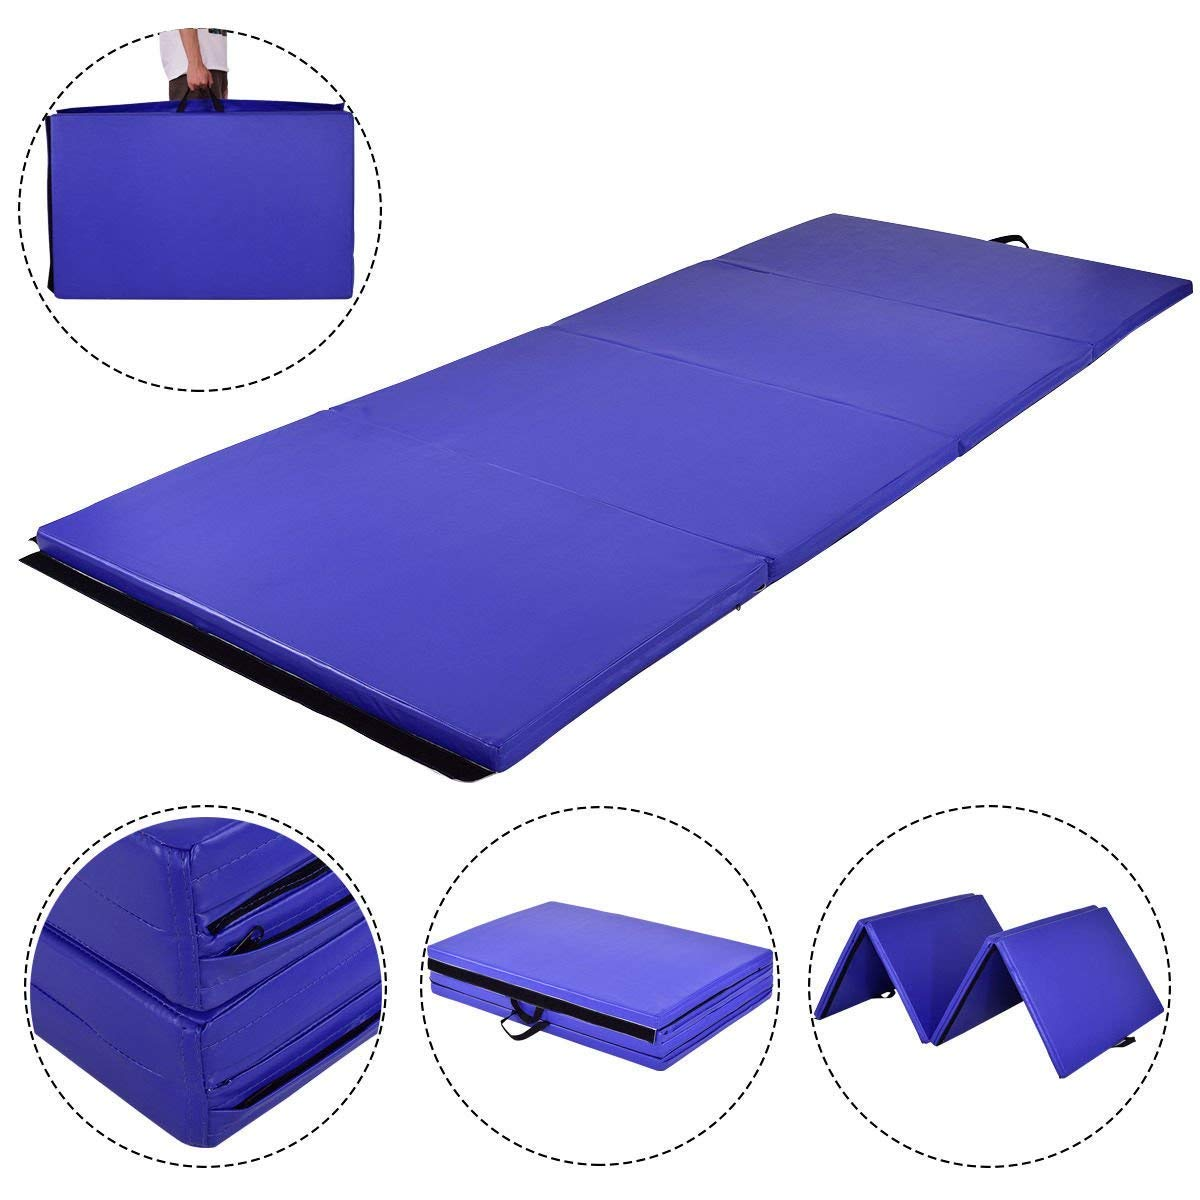 MAT EXPERT 4x10x2 Gymnastics Mat Thick Folding for Tumbling Exercise Gym Fitness Mat with Hook /& Loop Fasteners